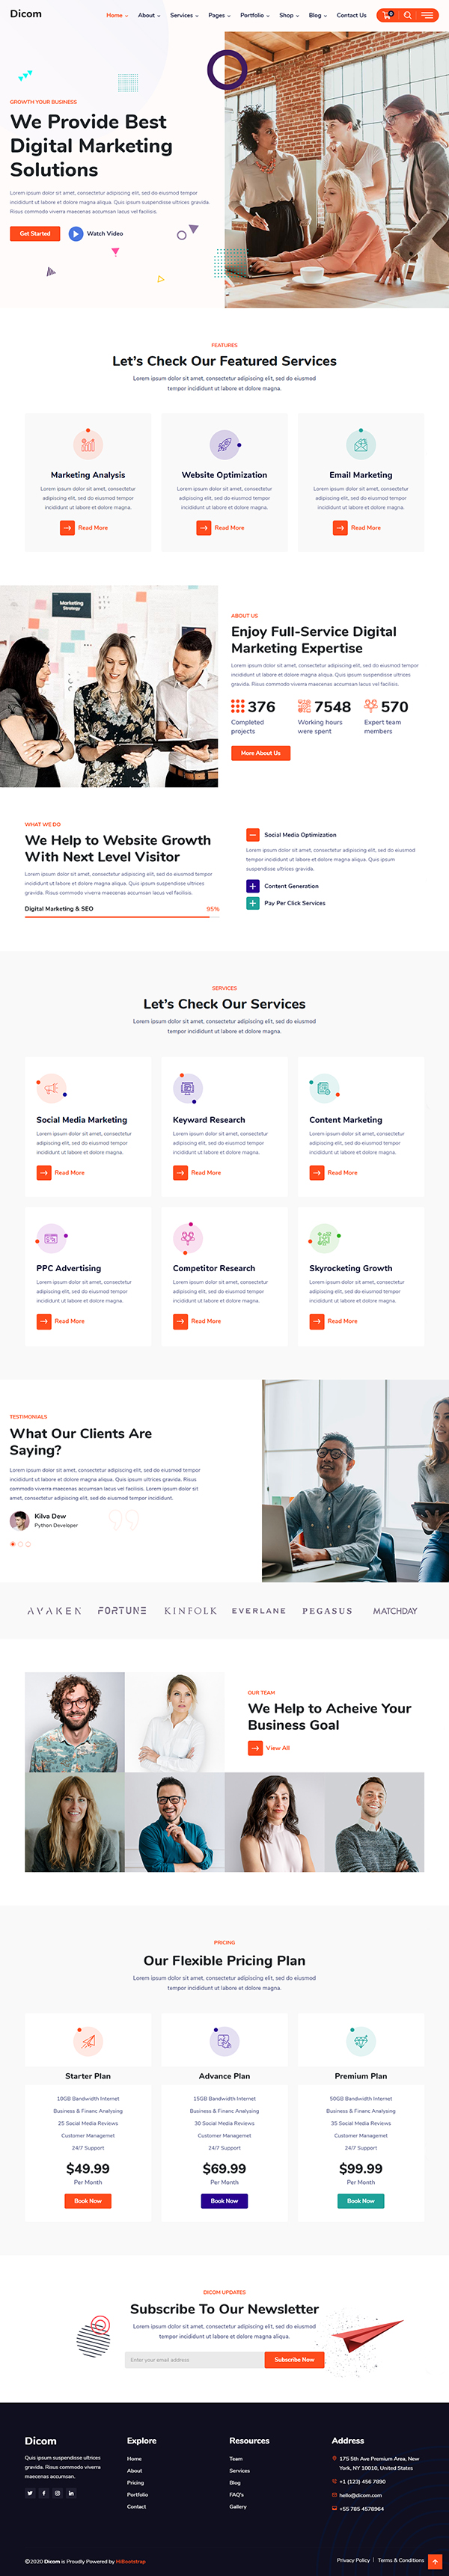 Dicom - Elementor SEO & Marketing Agency WordPress Theme